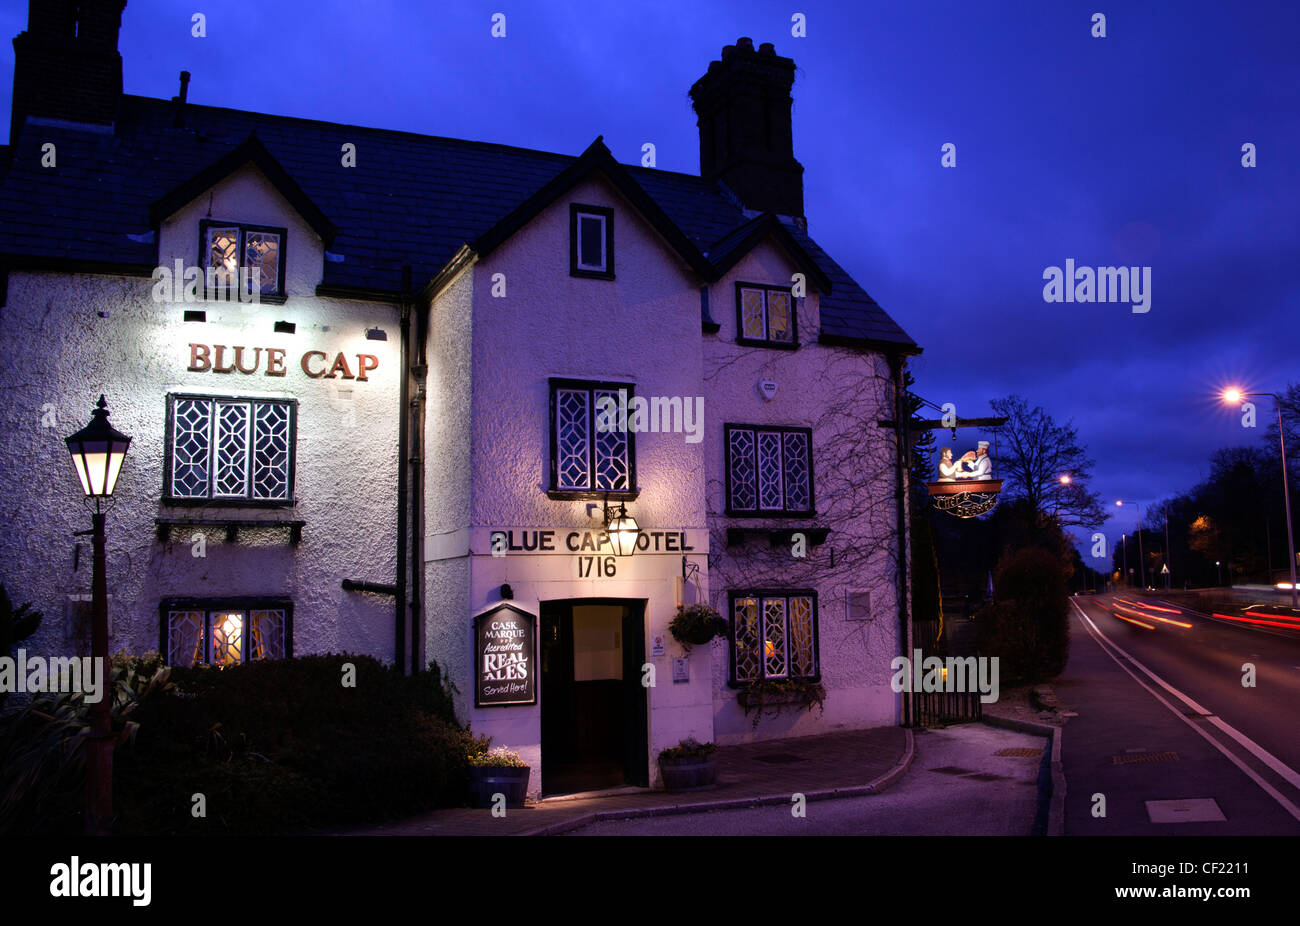 Blue Cap historic Pub and drinking place A556 at Dusk,Cheshire,England,United Kingdom gotonysmith Blue Cap,Cheshire,named,after,a,noted,18th,century,foxhound,marked,with,a,dark,patch,on,its,head,night,shot,blue,hour,bluehour,near,road,fast,country,inn,tourist,attraction,Blue,Cap,Pub,A556,Dusk,The,Blue,Cap,in,Cheshire,was,named,after,a,noted,18th,century,foxhound,marked,with,a,dark,patch,on,its,head,ales,CAMRA,public,house,Dark,beer,gotonysmith,Buy Pictures of,Buy Images Of